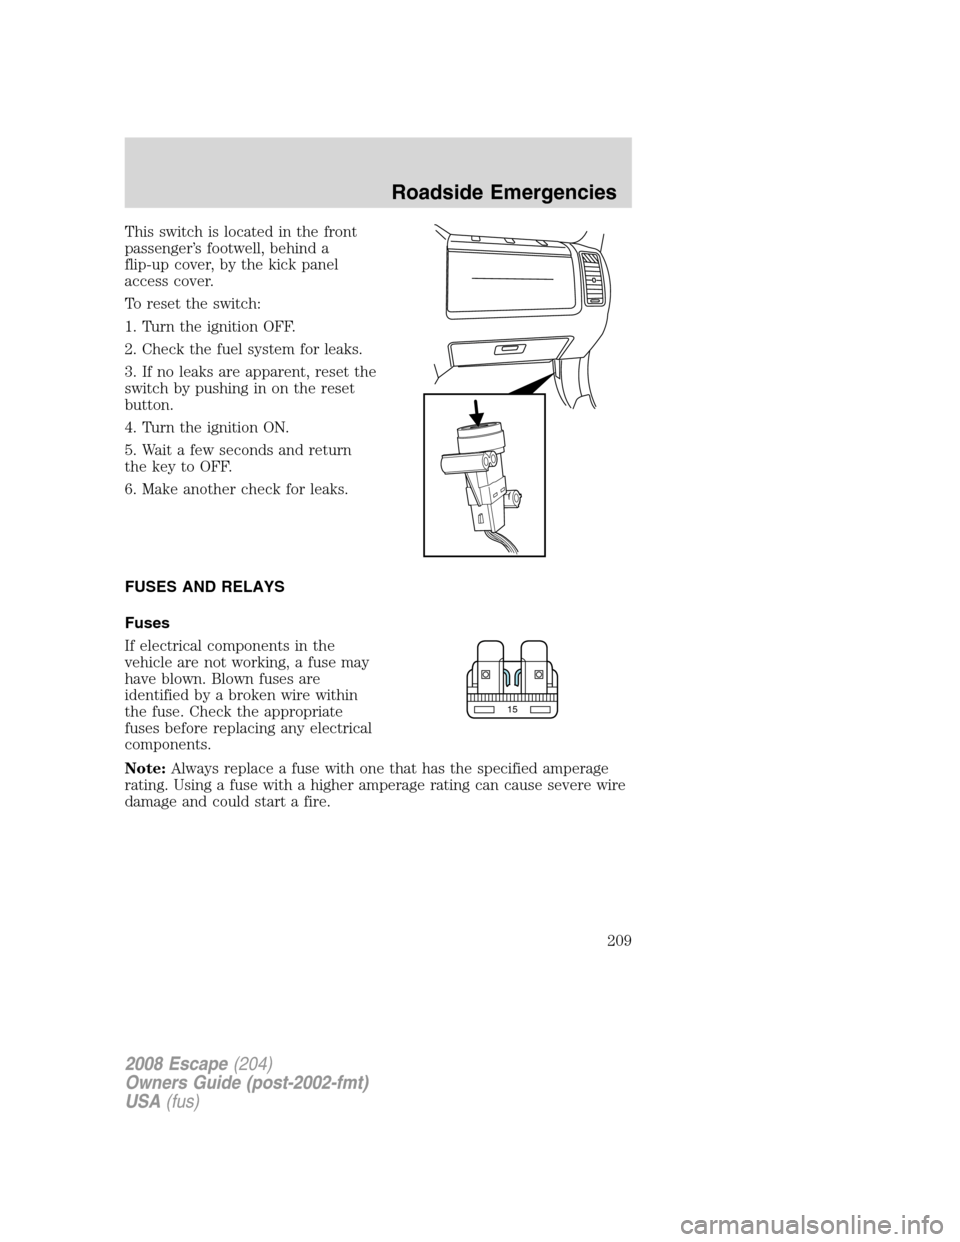 hight resolution of ford escape 2008 2 g owners manual page 209